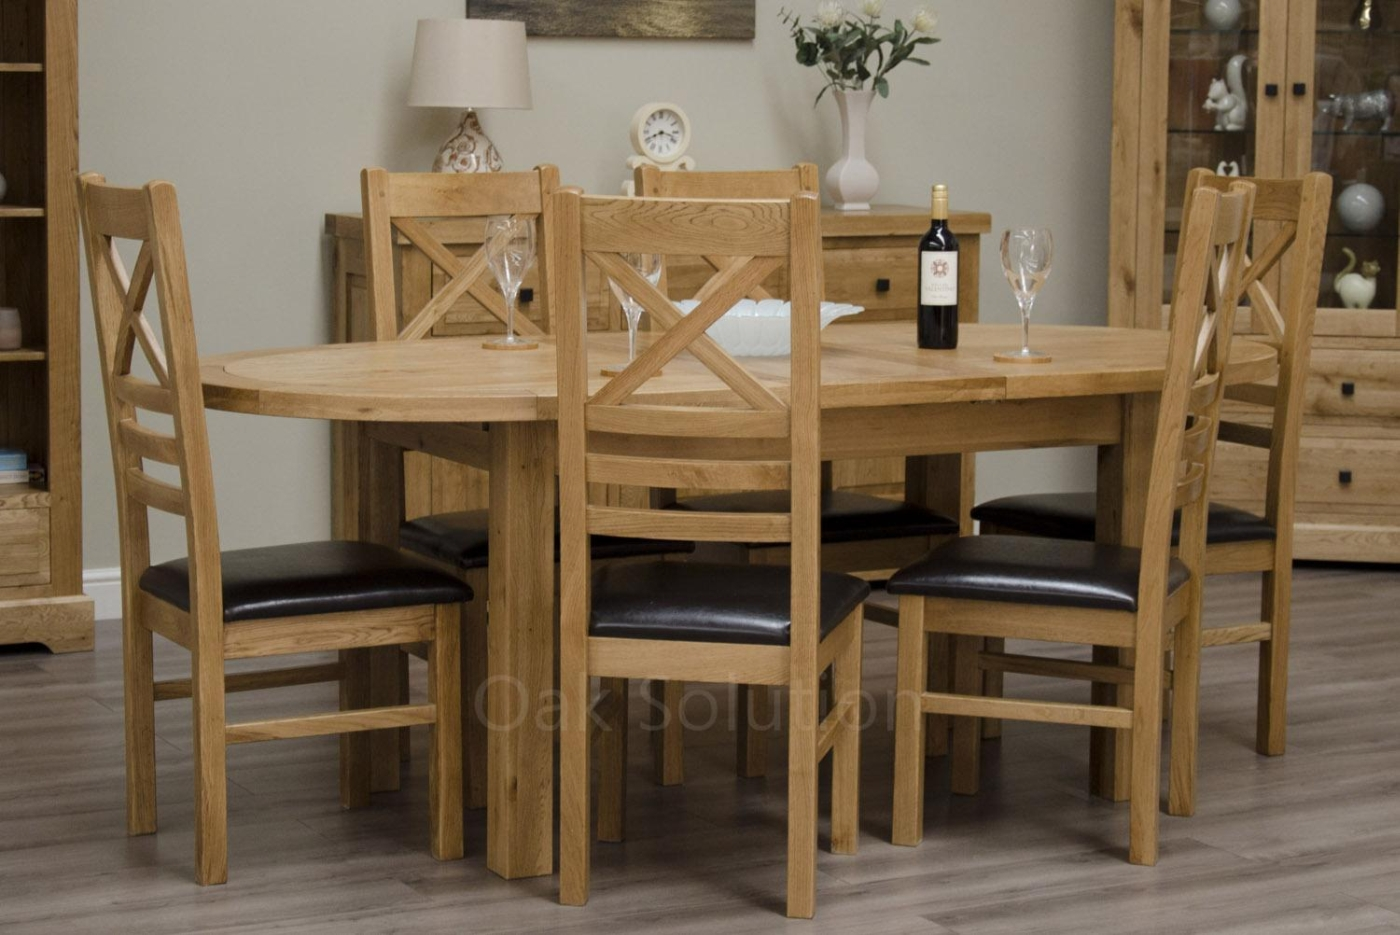 Regent Solid Oak Furniture Oval Extending Dining Table And